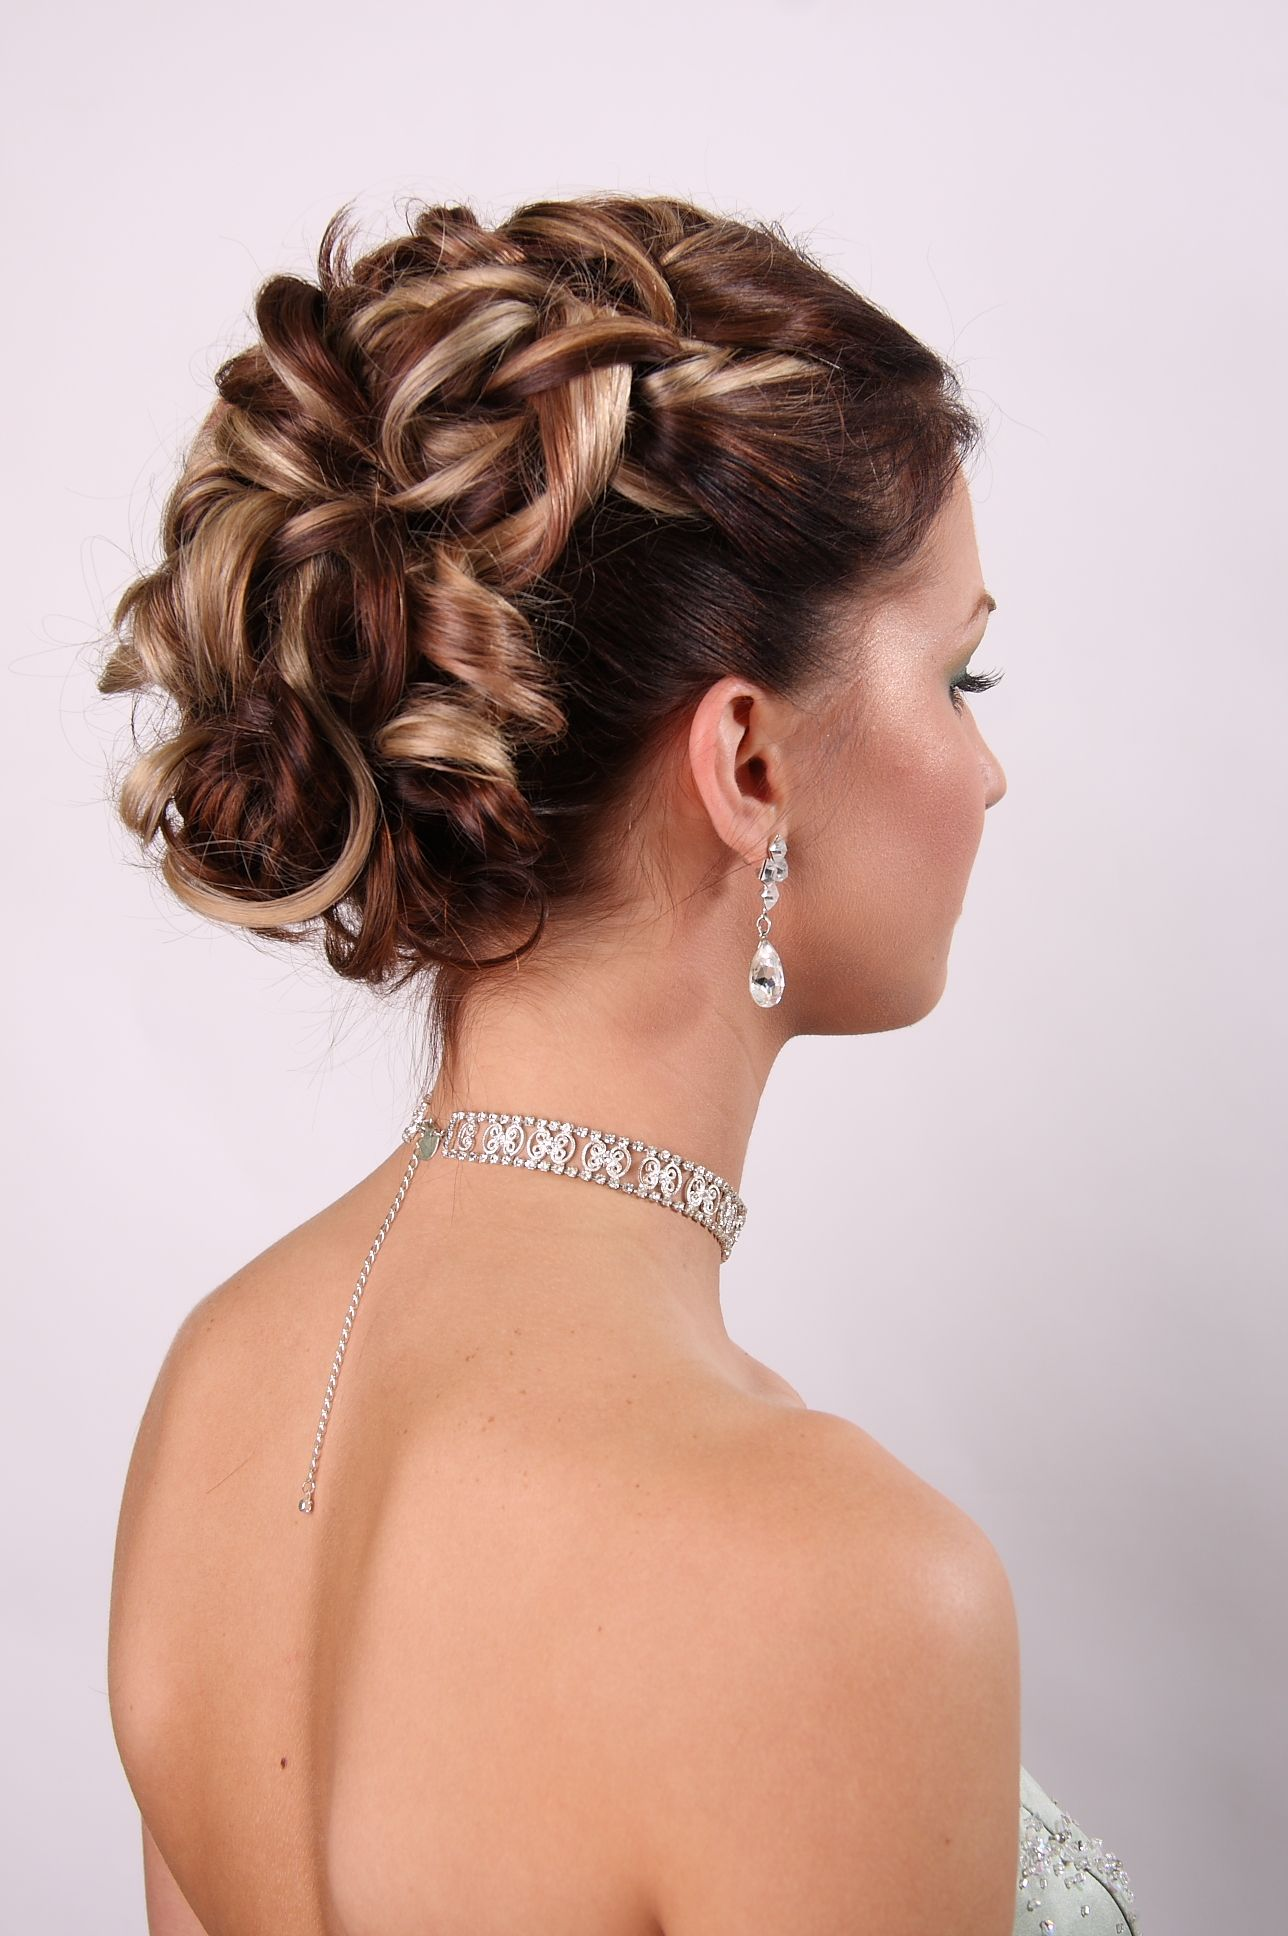 Pin by shamekka washington on wedding pinterest bridal hairstyle